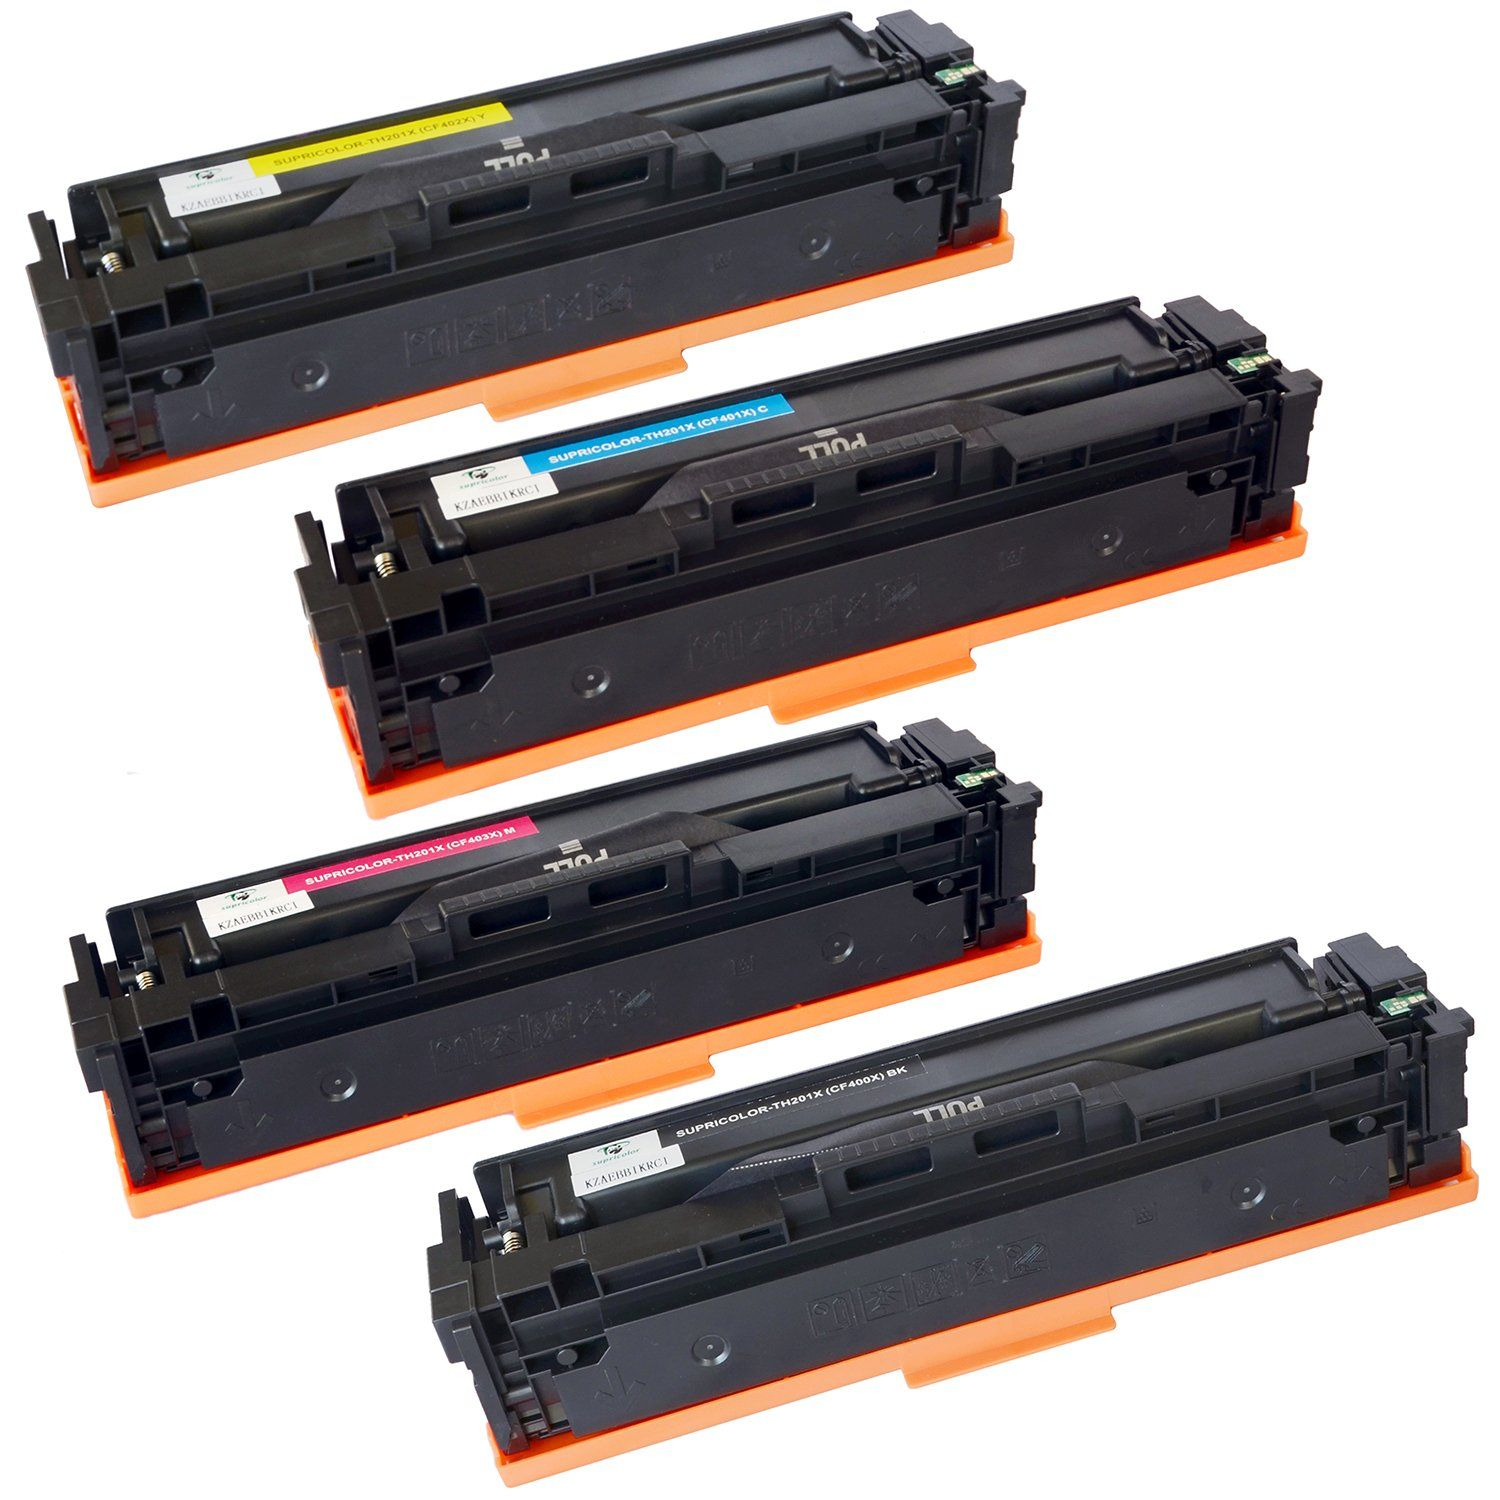 Supricolor Compatible 201x Toner Replacement For Cf400x Cf401x Cf402x Cf403x Toner Cartridges Use With Pro M252dw M252 In 2020 Toner Cartridge Video Camera Photo Toner